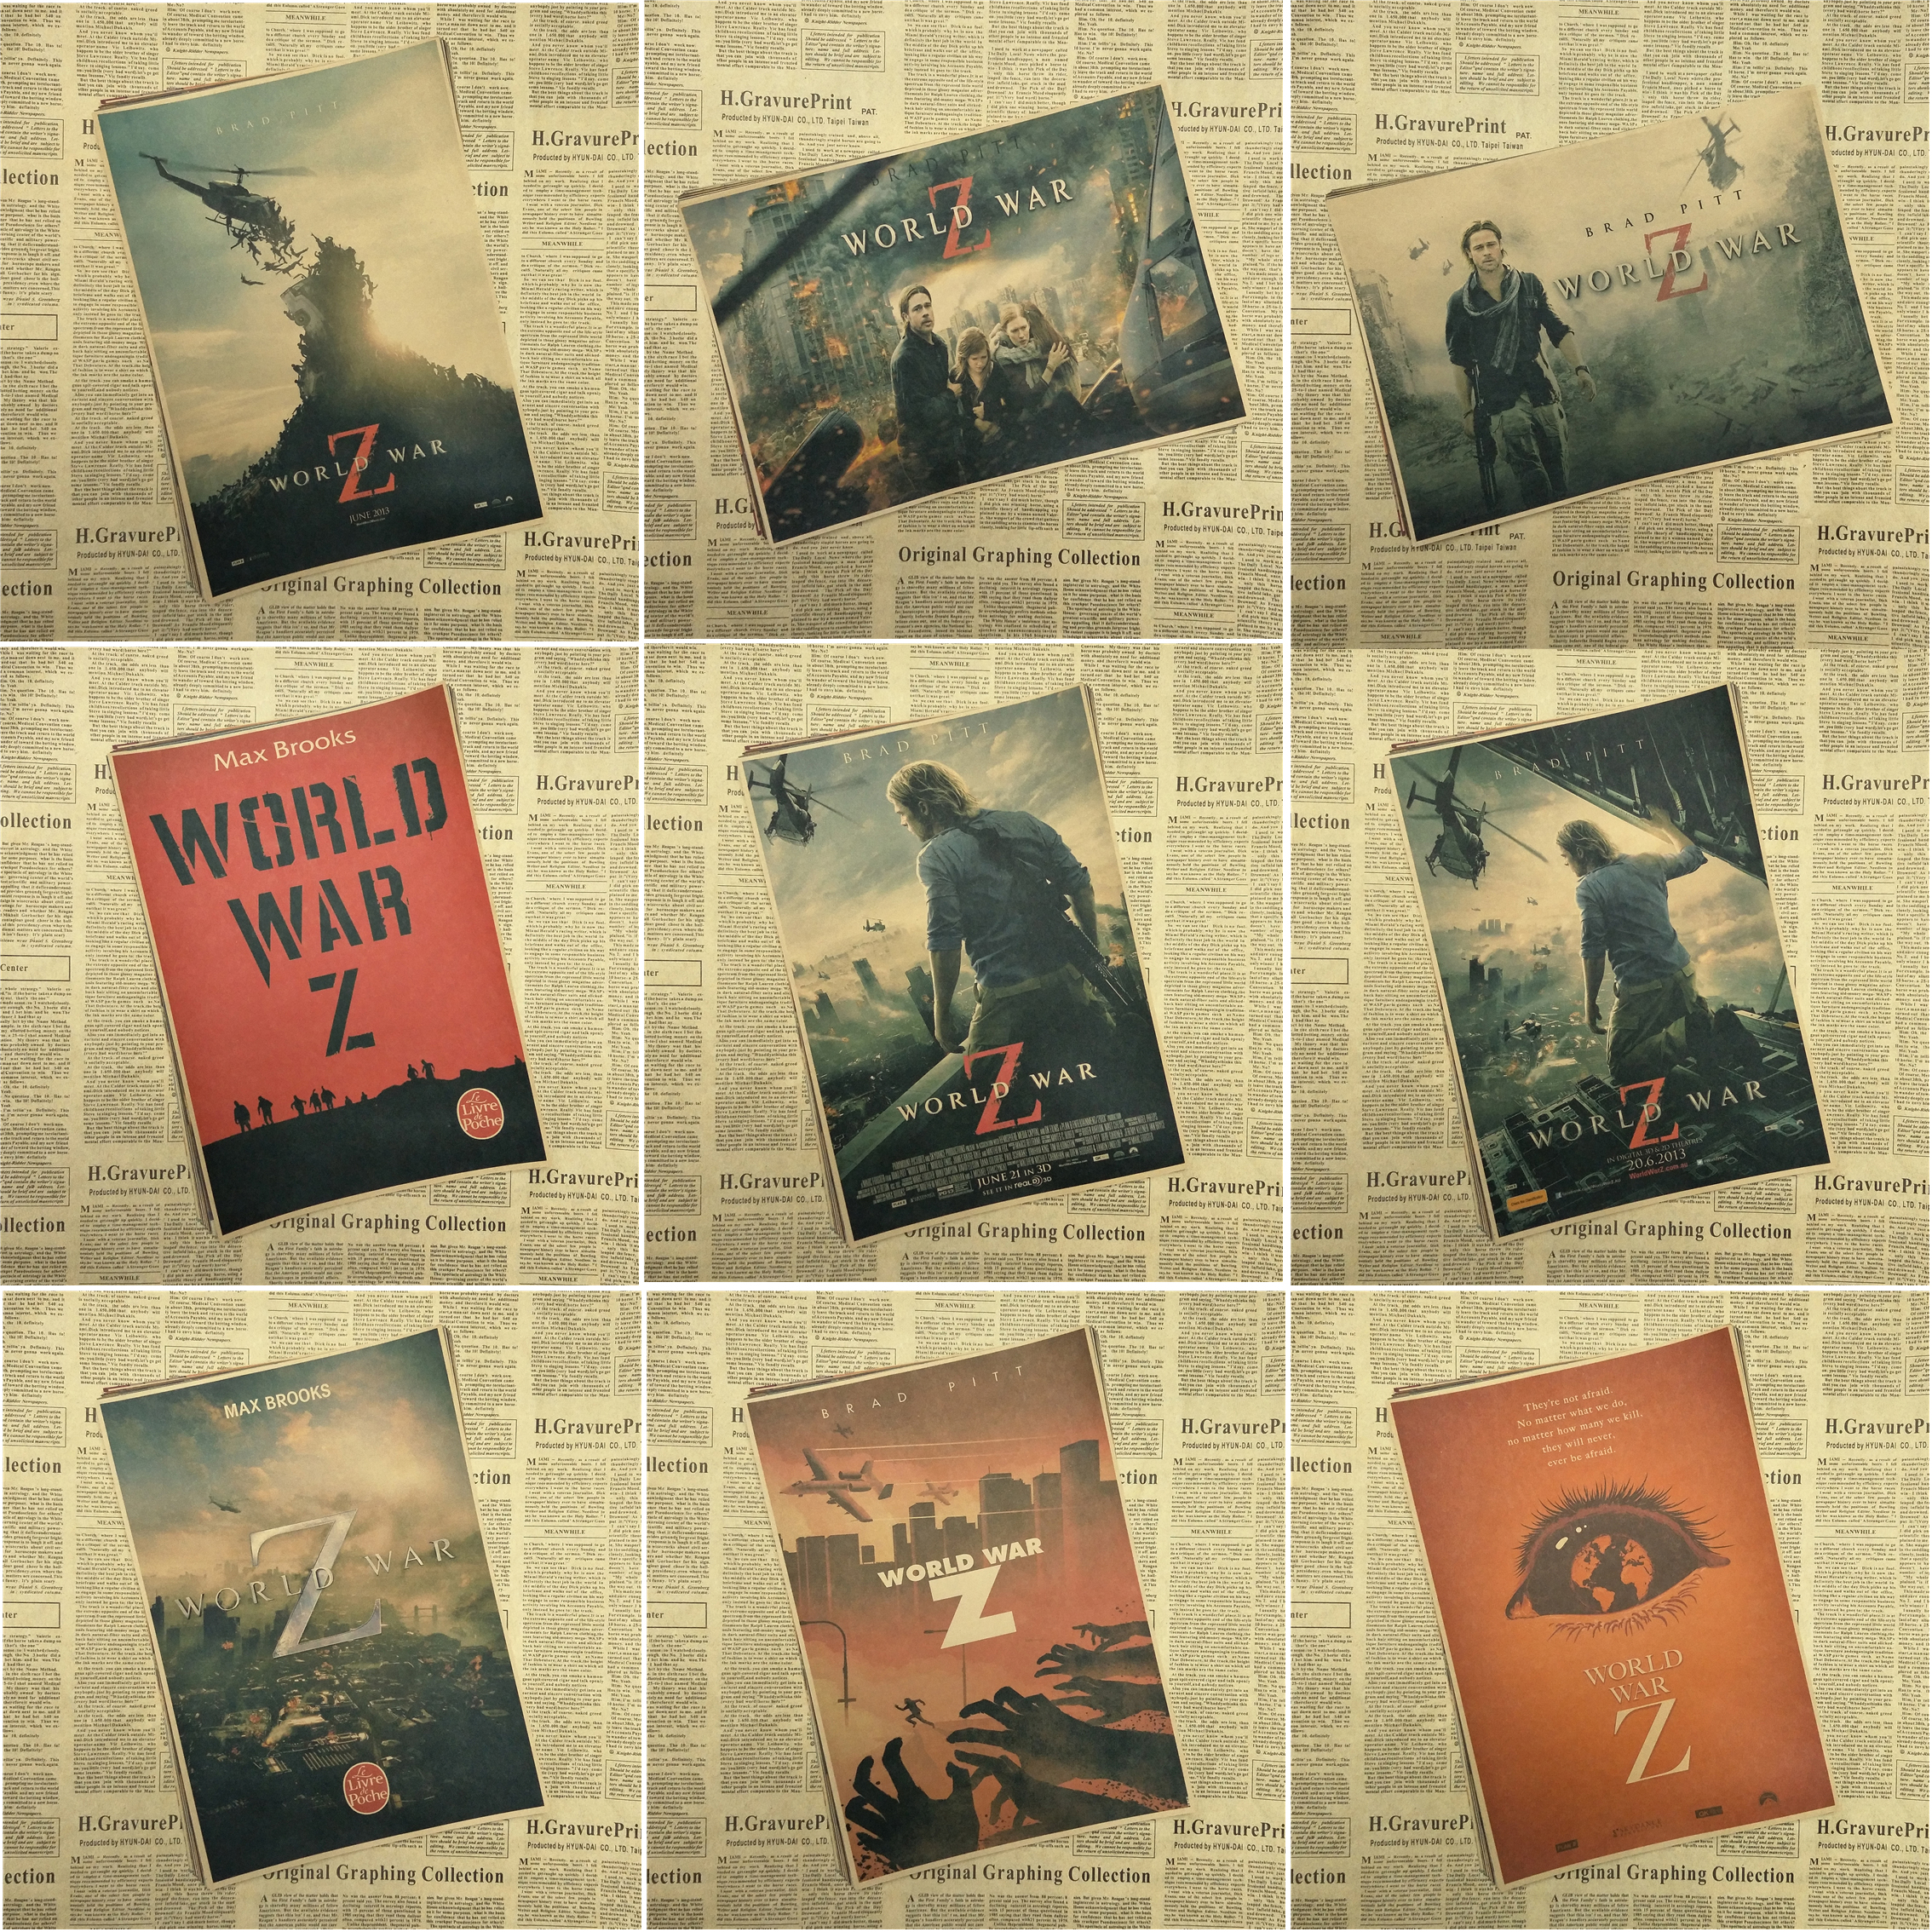 US $1 7 8% OFF|WORLD WAR Z Brad Pitt Vintage Movie Poster Wall Paper Home  Decor Cudros Art Painting Mix Order 42x30CM-in Wall Stickers from Home &